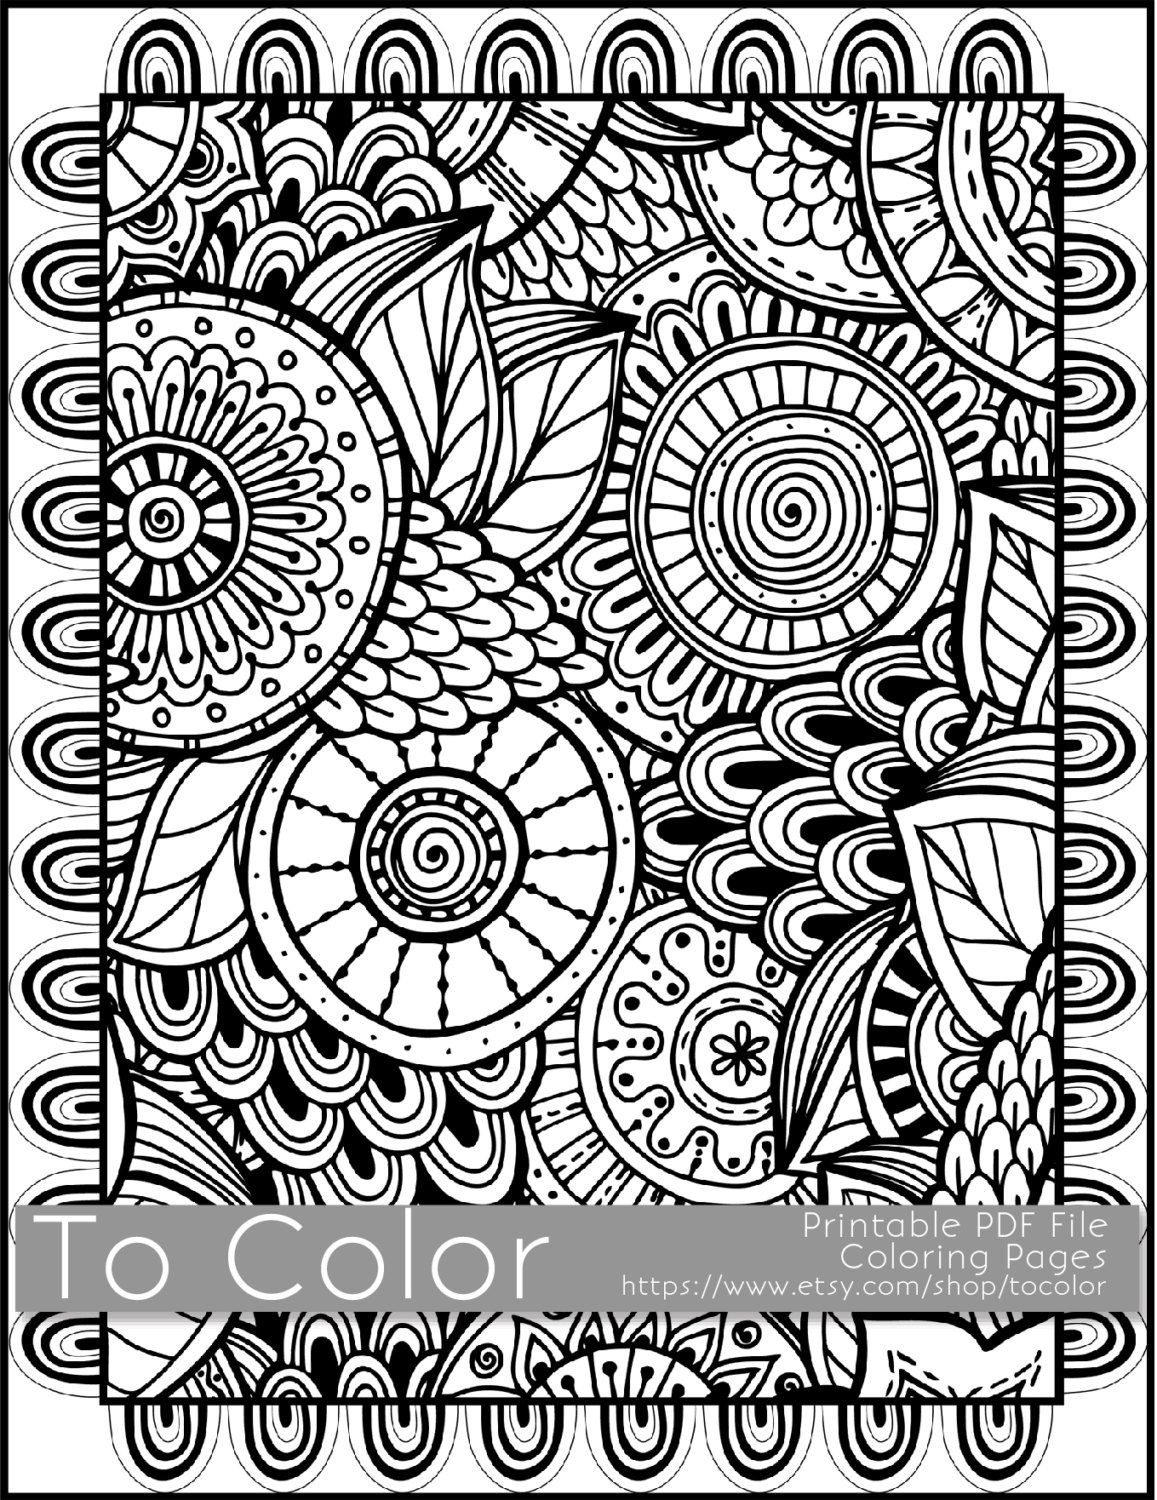 Printable Coloring Pages For Adults All Over Large Doodle Pattern